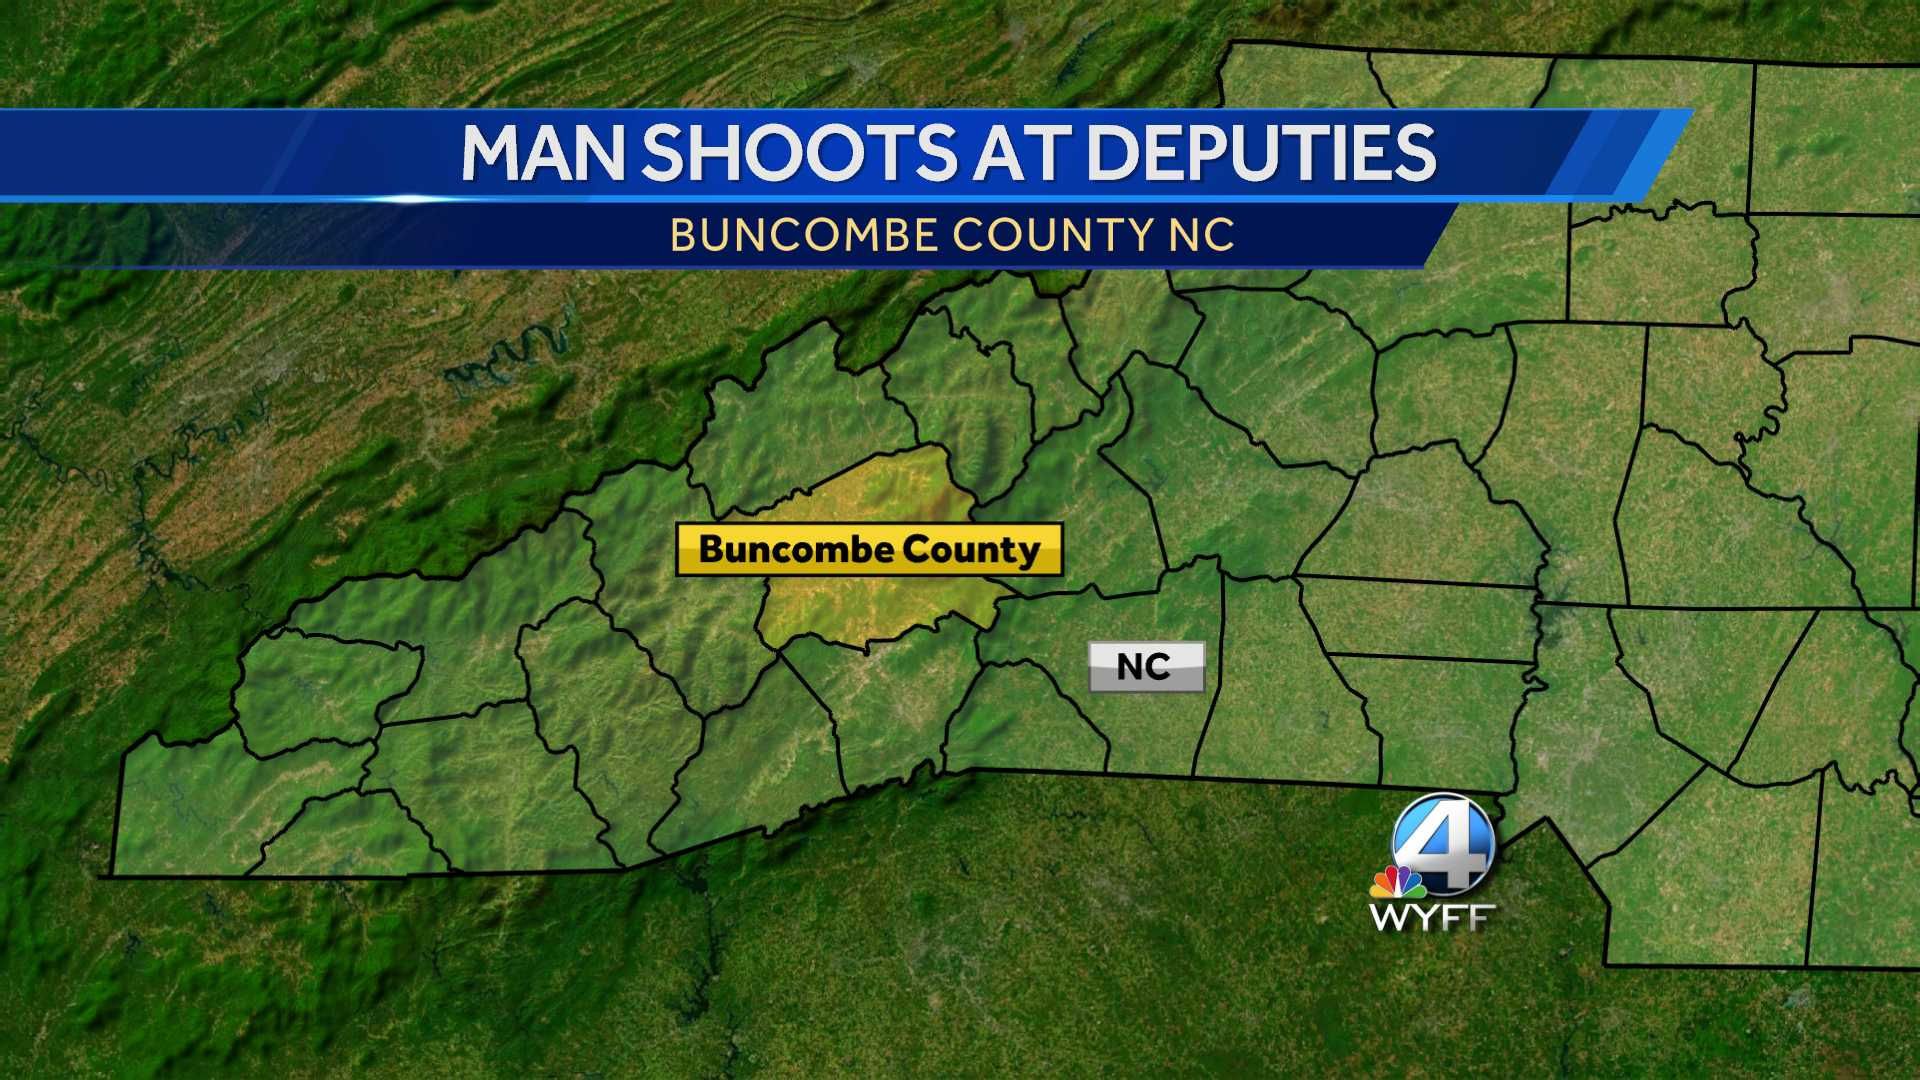 Buncombe County deputies were shot at while responding to an incident